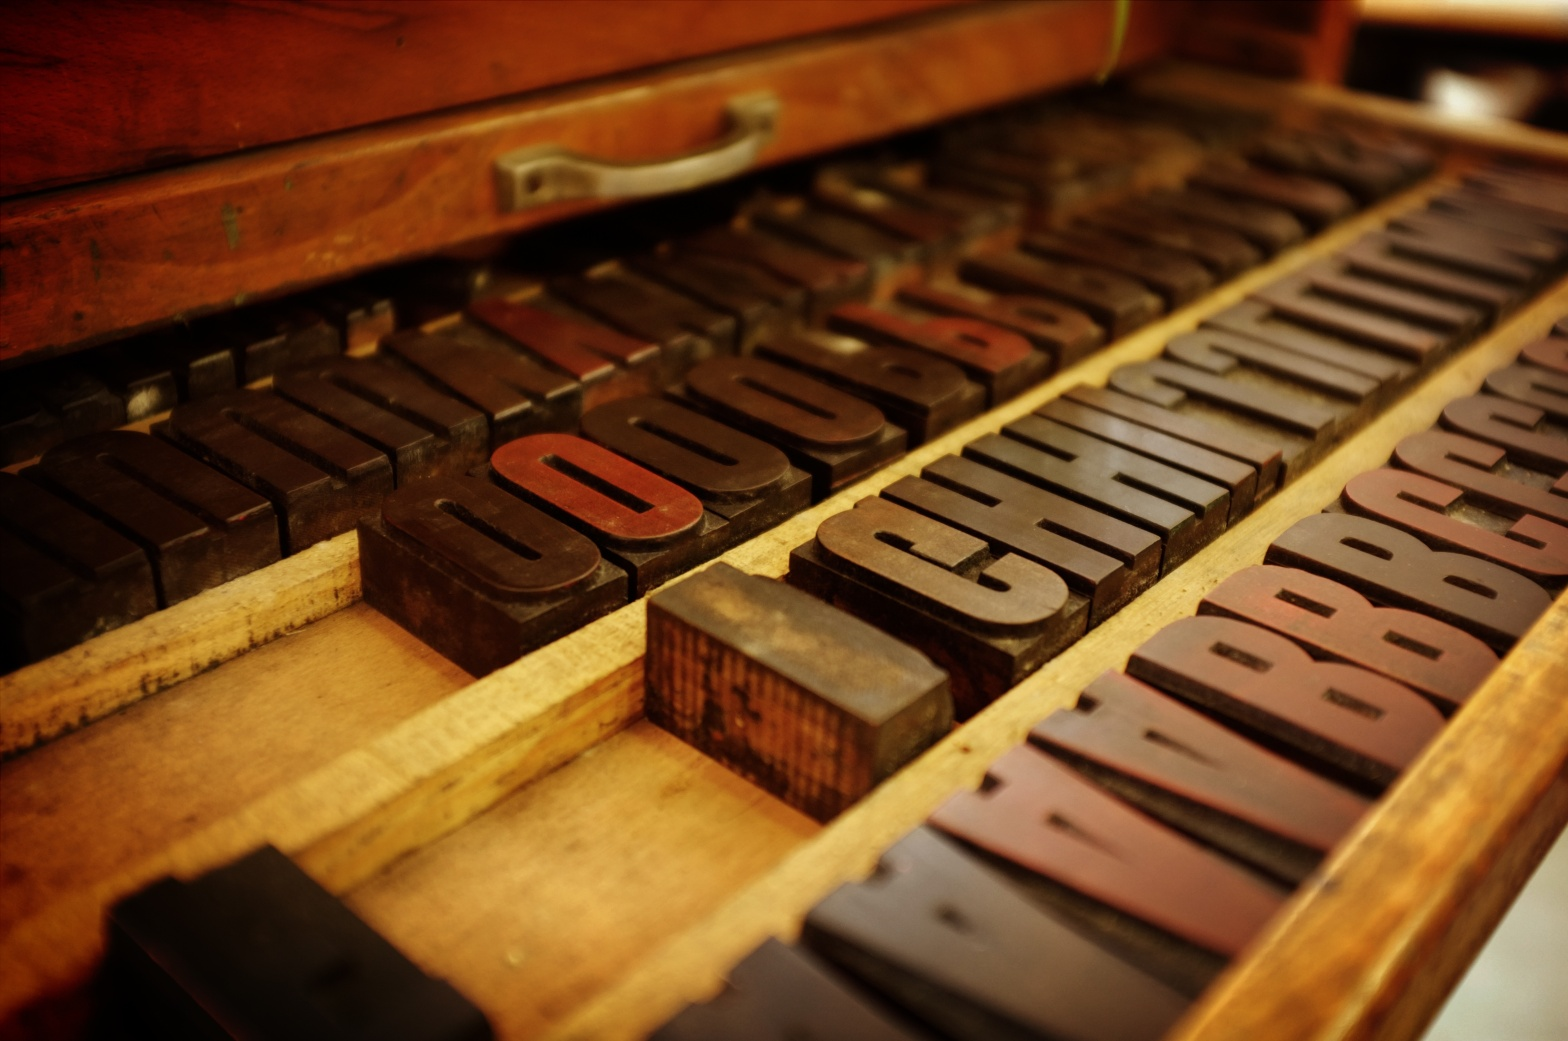 Letter blocks from a printing press